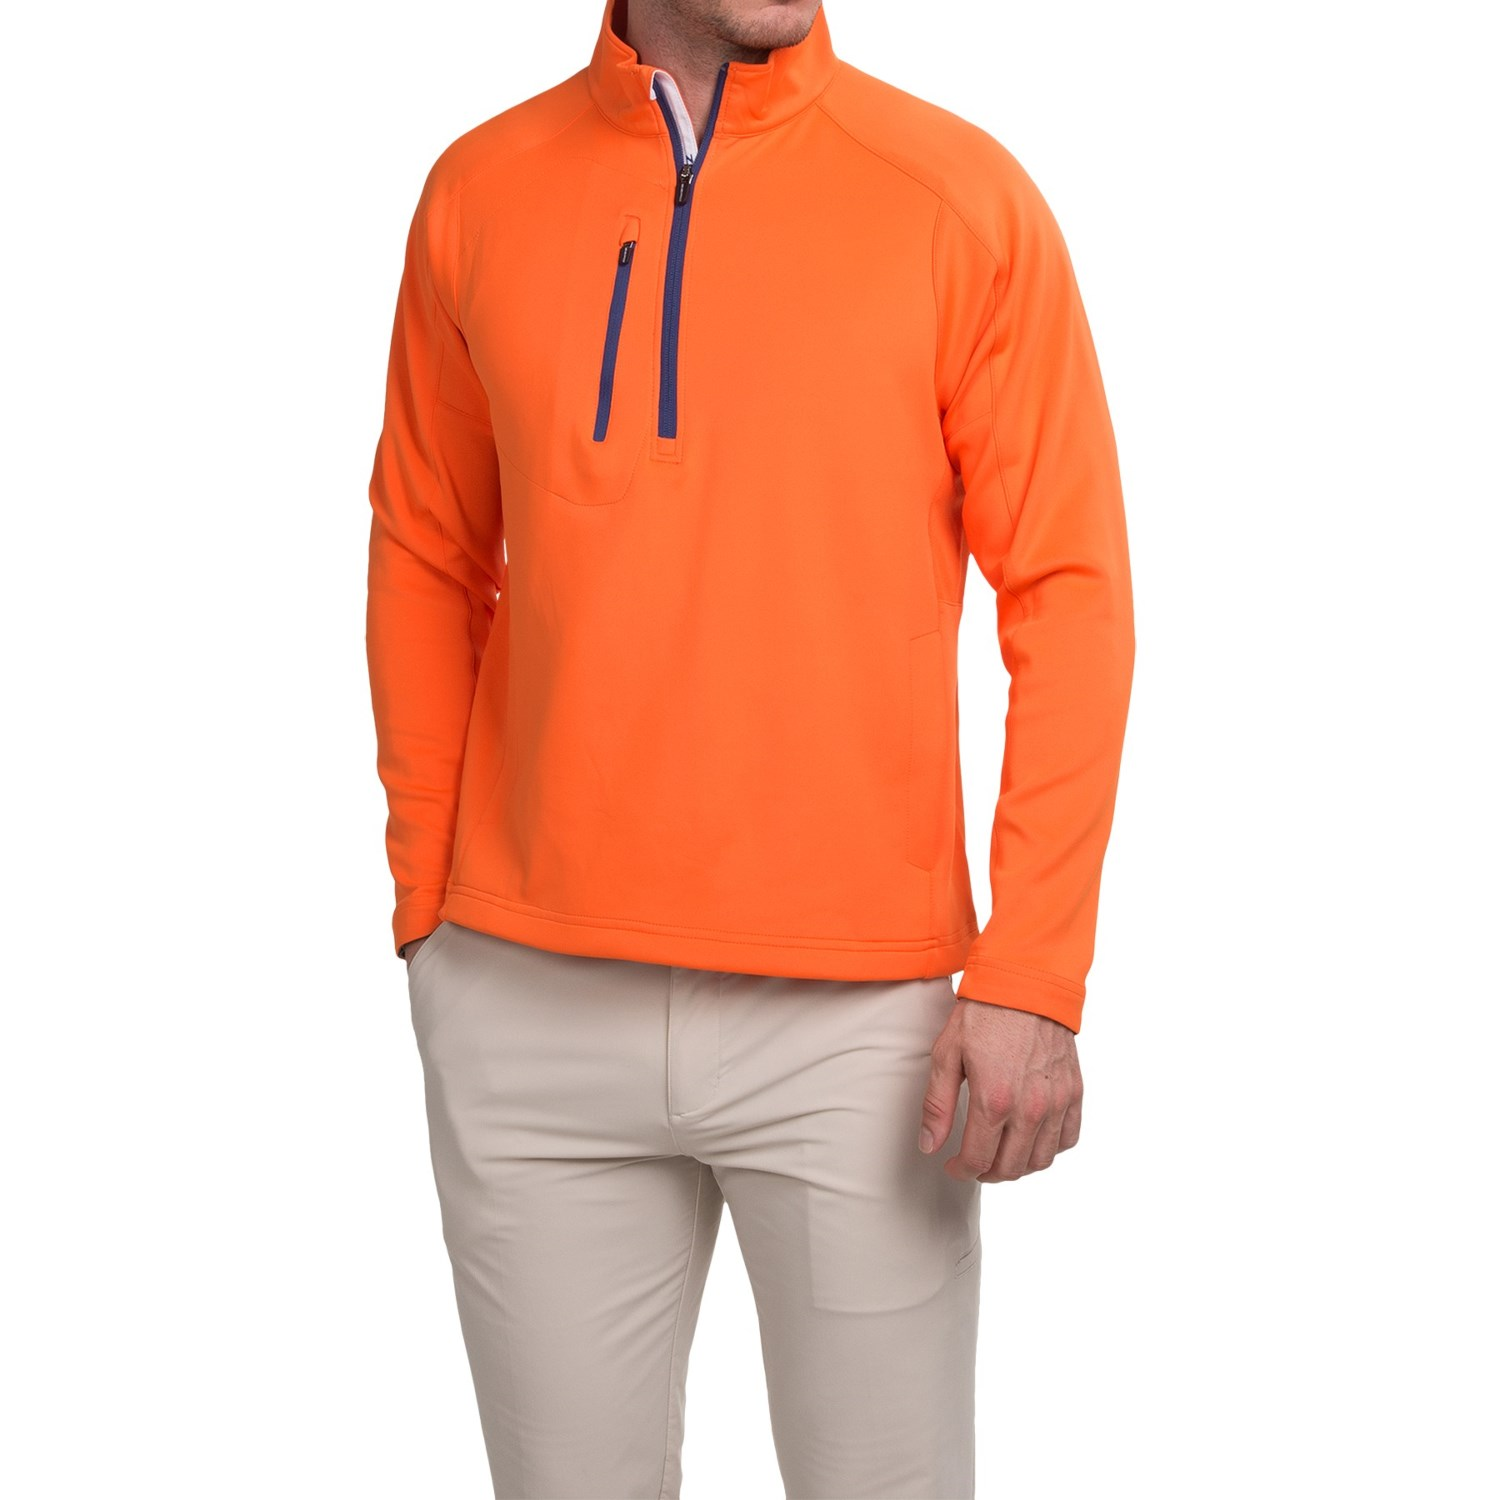 Zero restriction z500 pullover shirt for men save 55 for Mens long sleeve pullover shirts